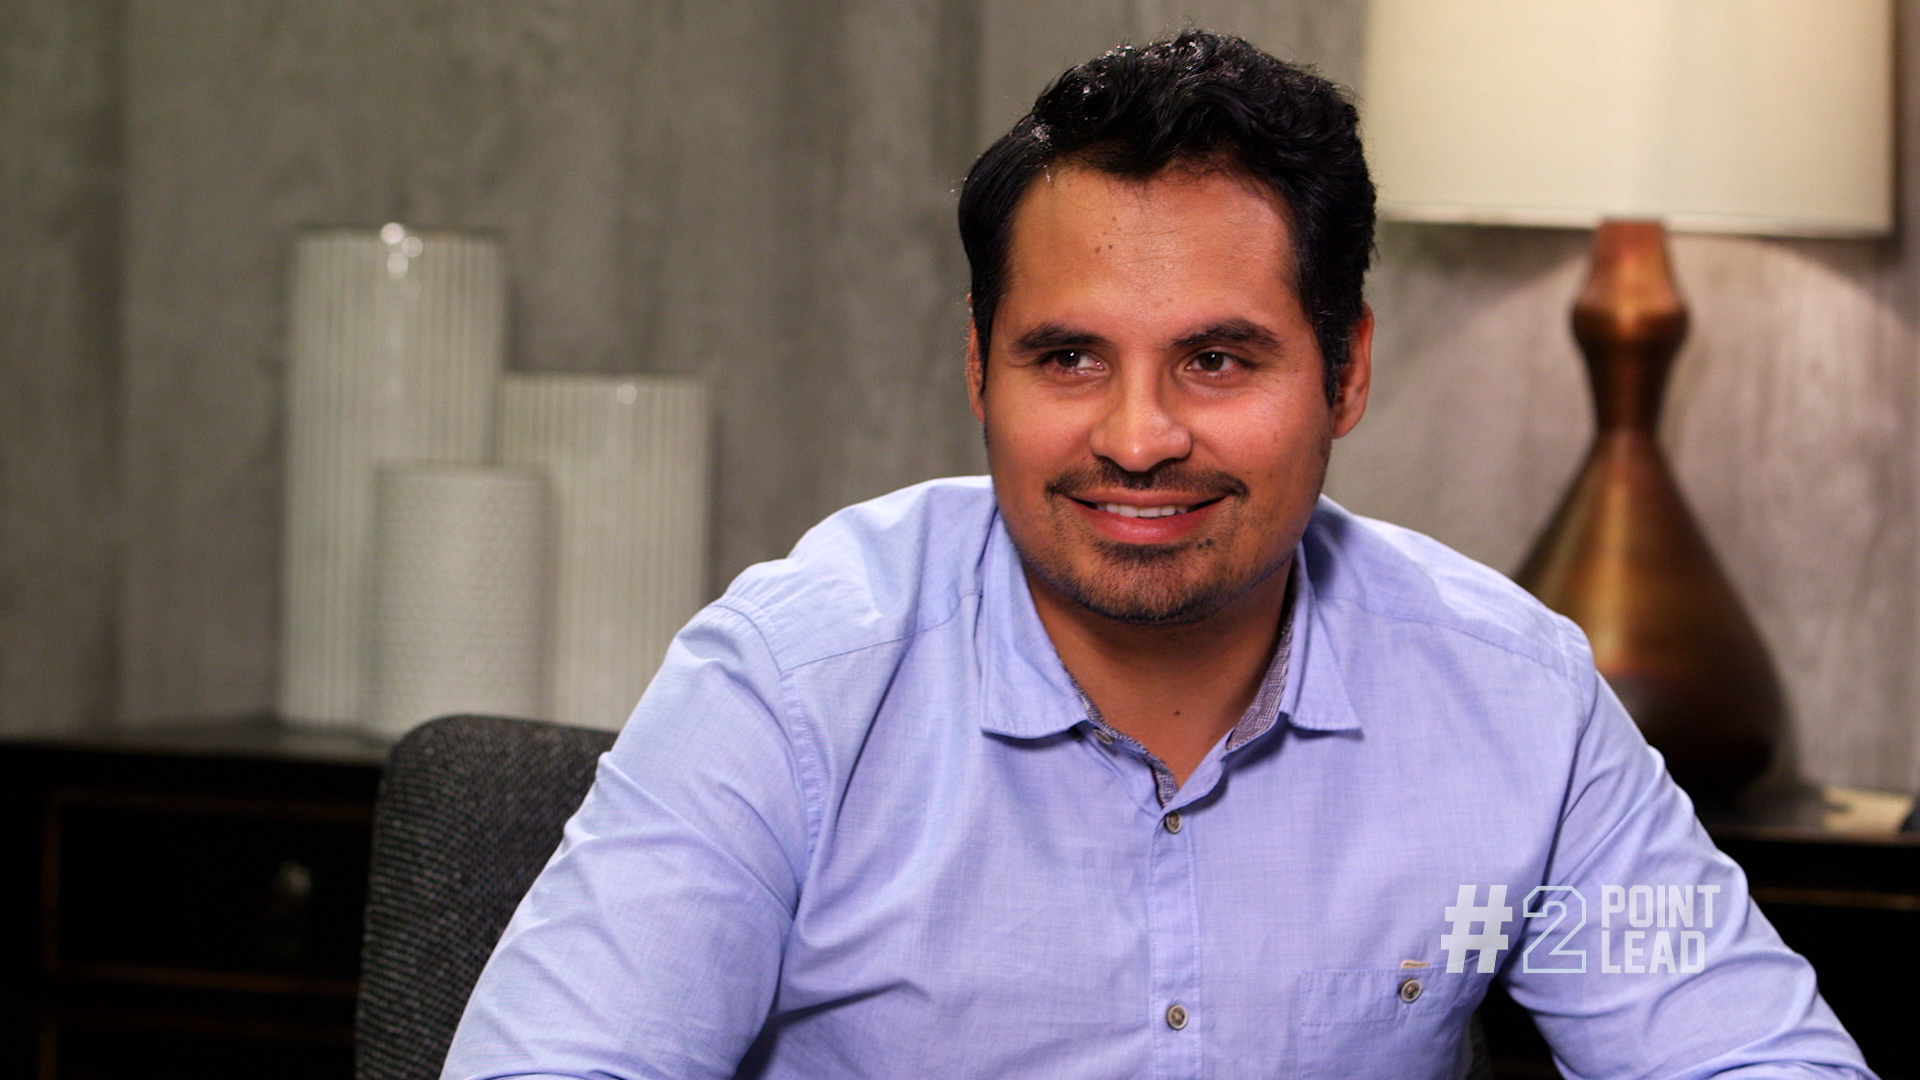 071615_MichaelPena_Intv_FINAL.mov.00_00_18_02.Still001